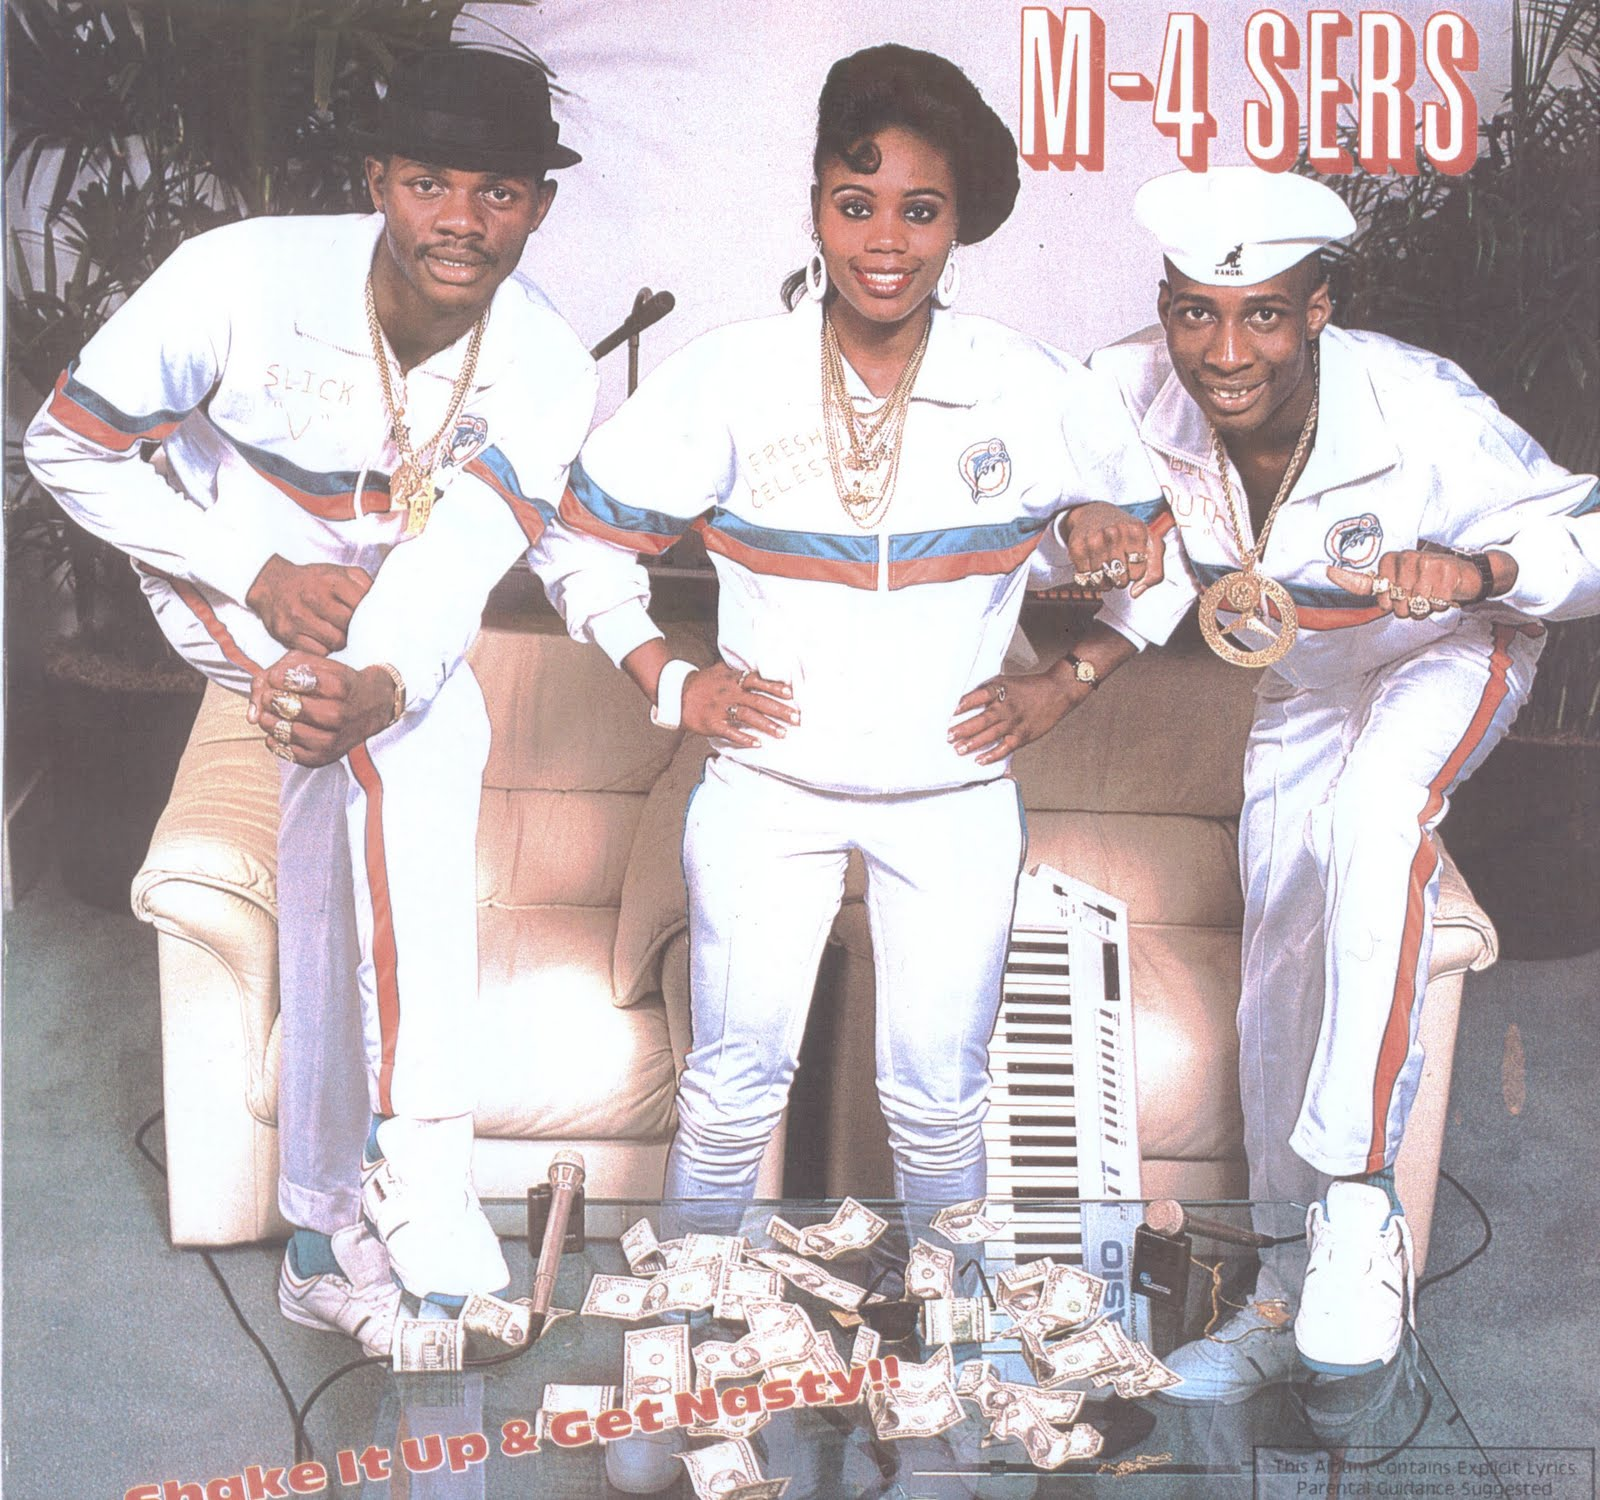 drop da bass: m-4 sers - 1988 - shake it up & get nasty!!